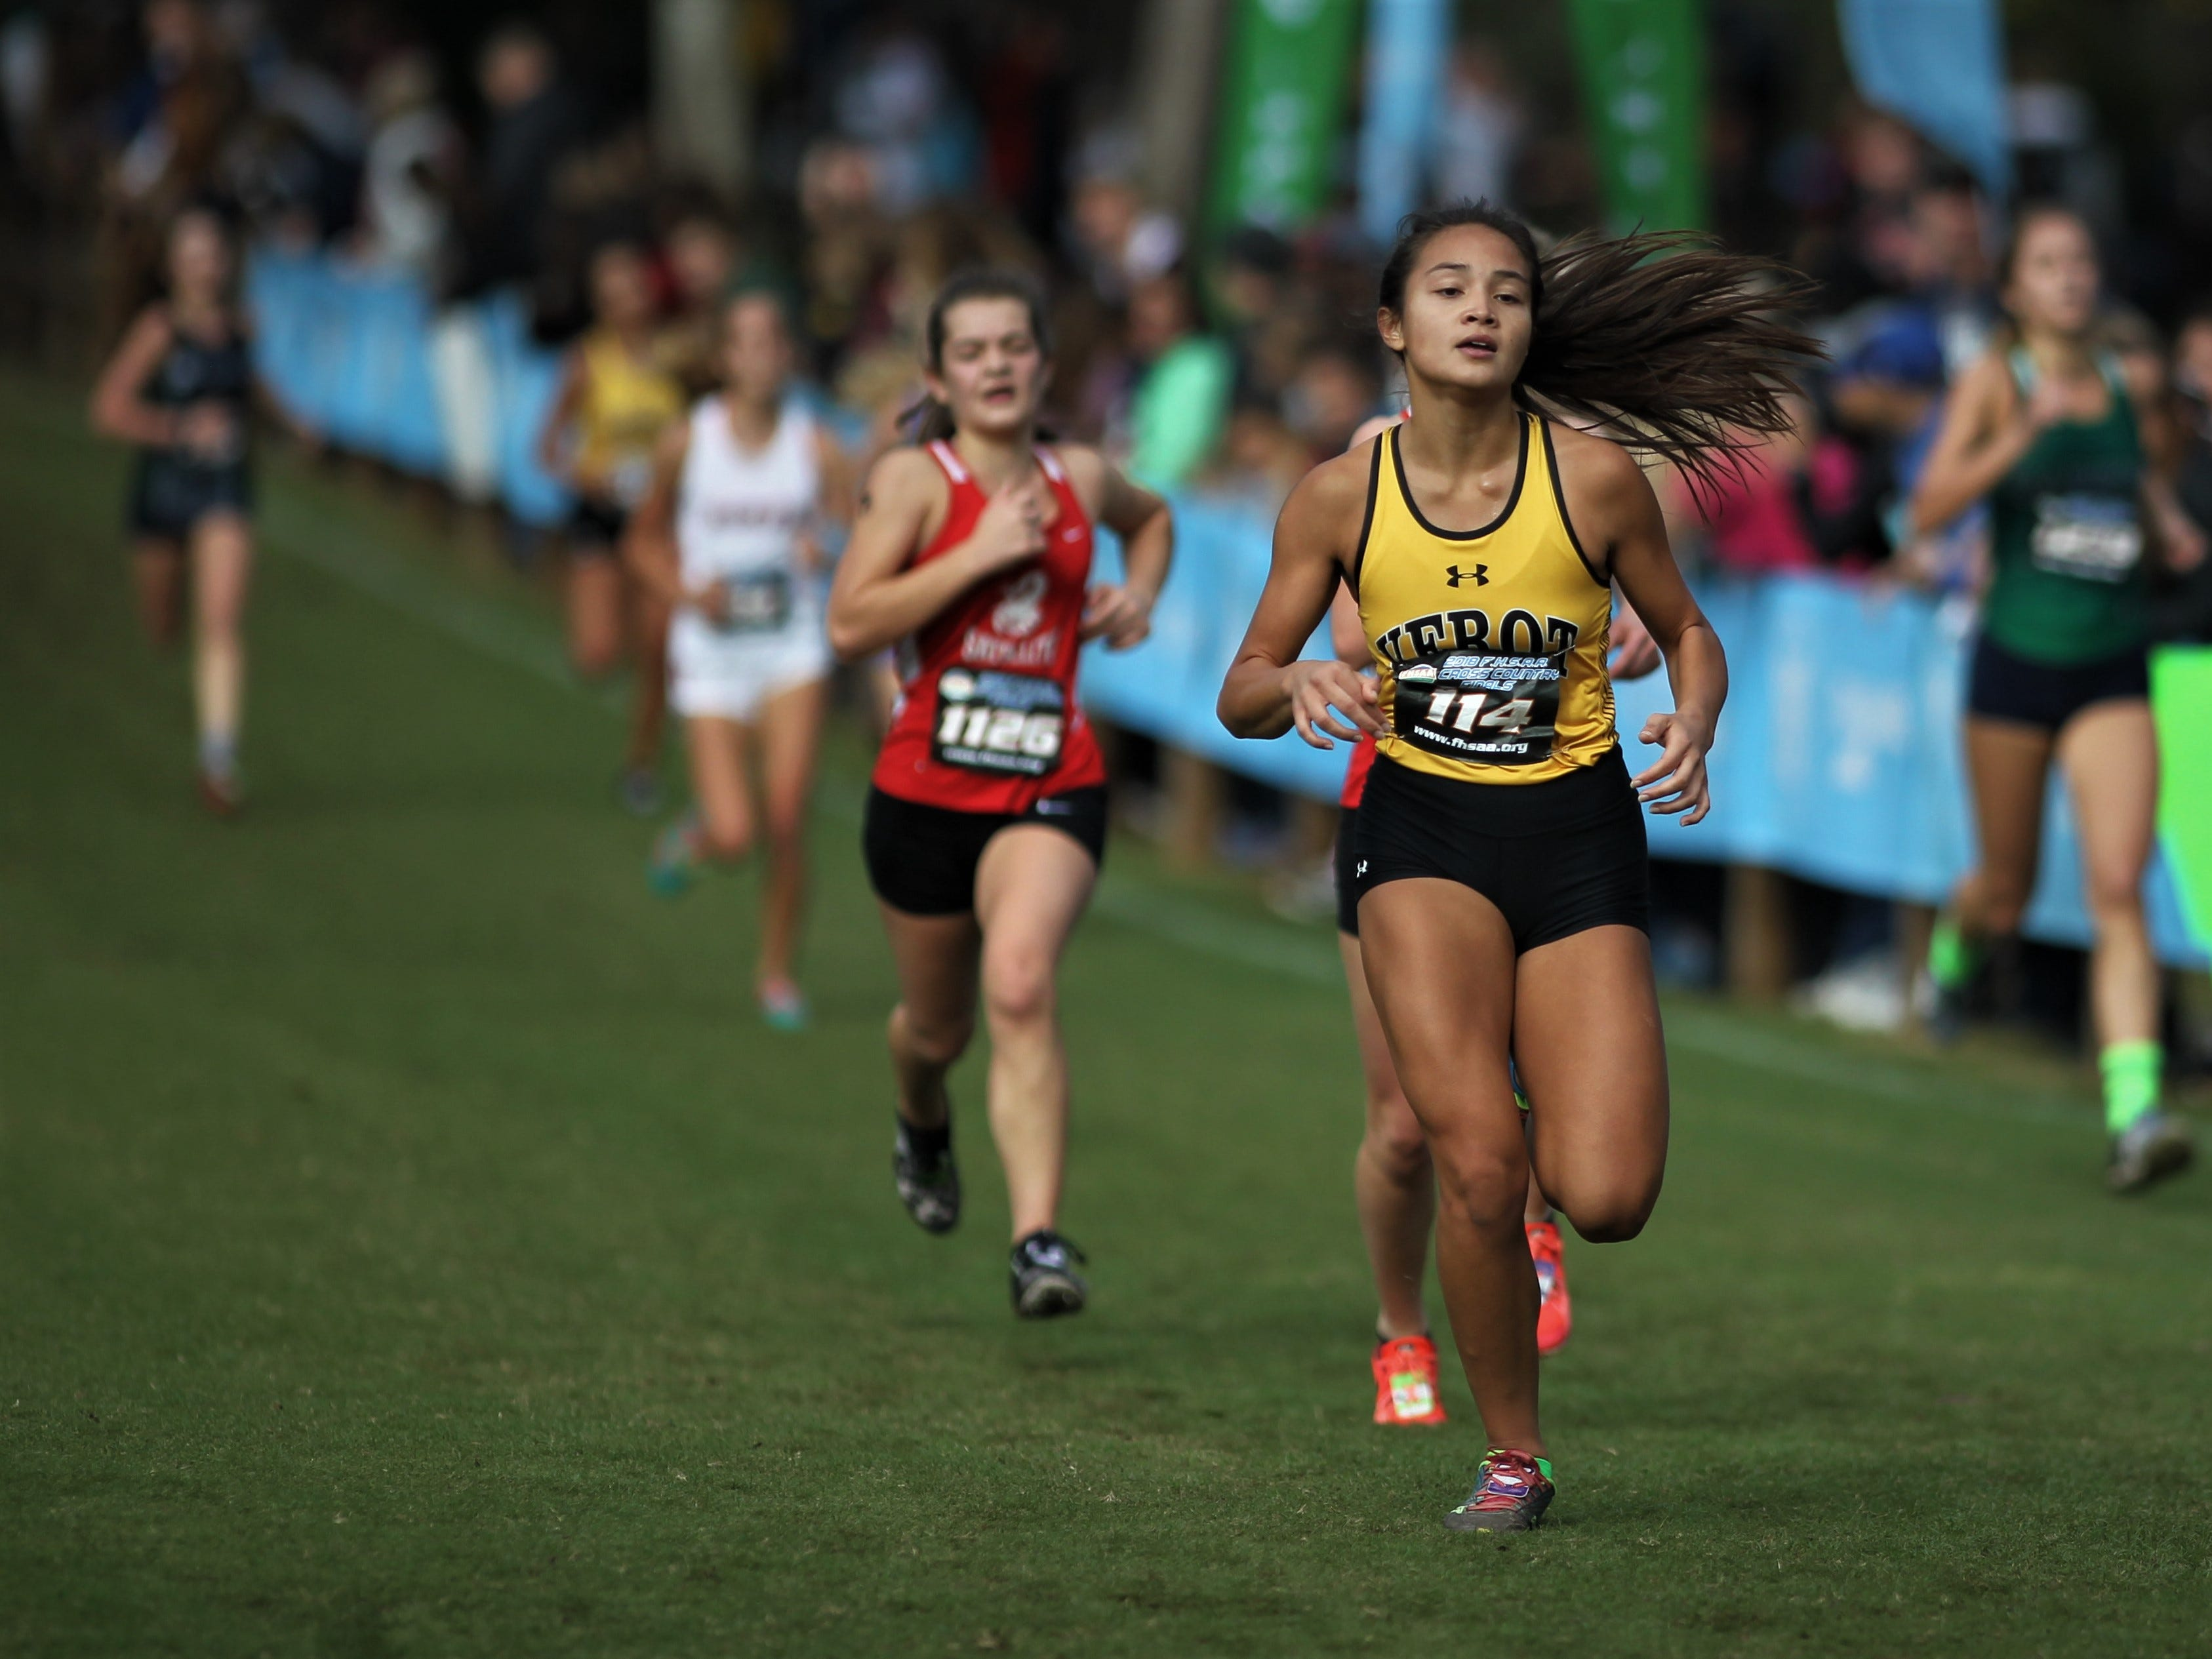 Bishop Verot junior Tracey Smith races in the Class 2A girls race of the FHSAA Cross Country State Championships at Apalachee Regional Park in Tallahassee, Saturday, Nov. 11, 2018.